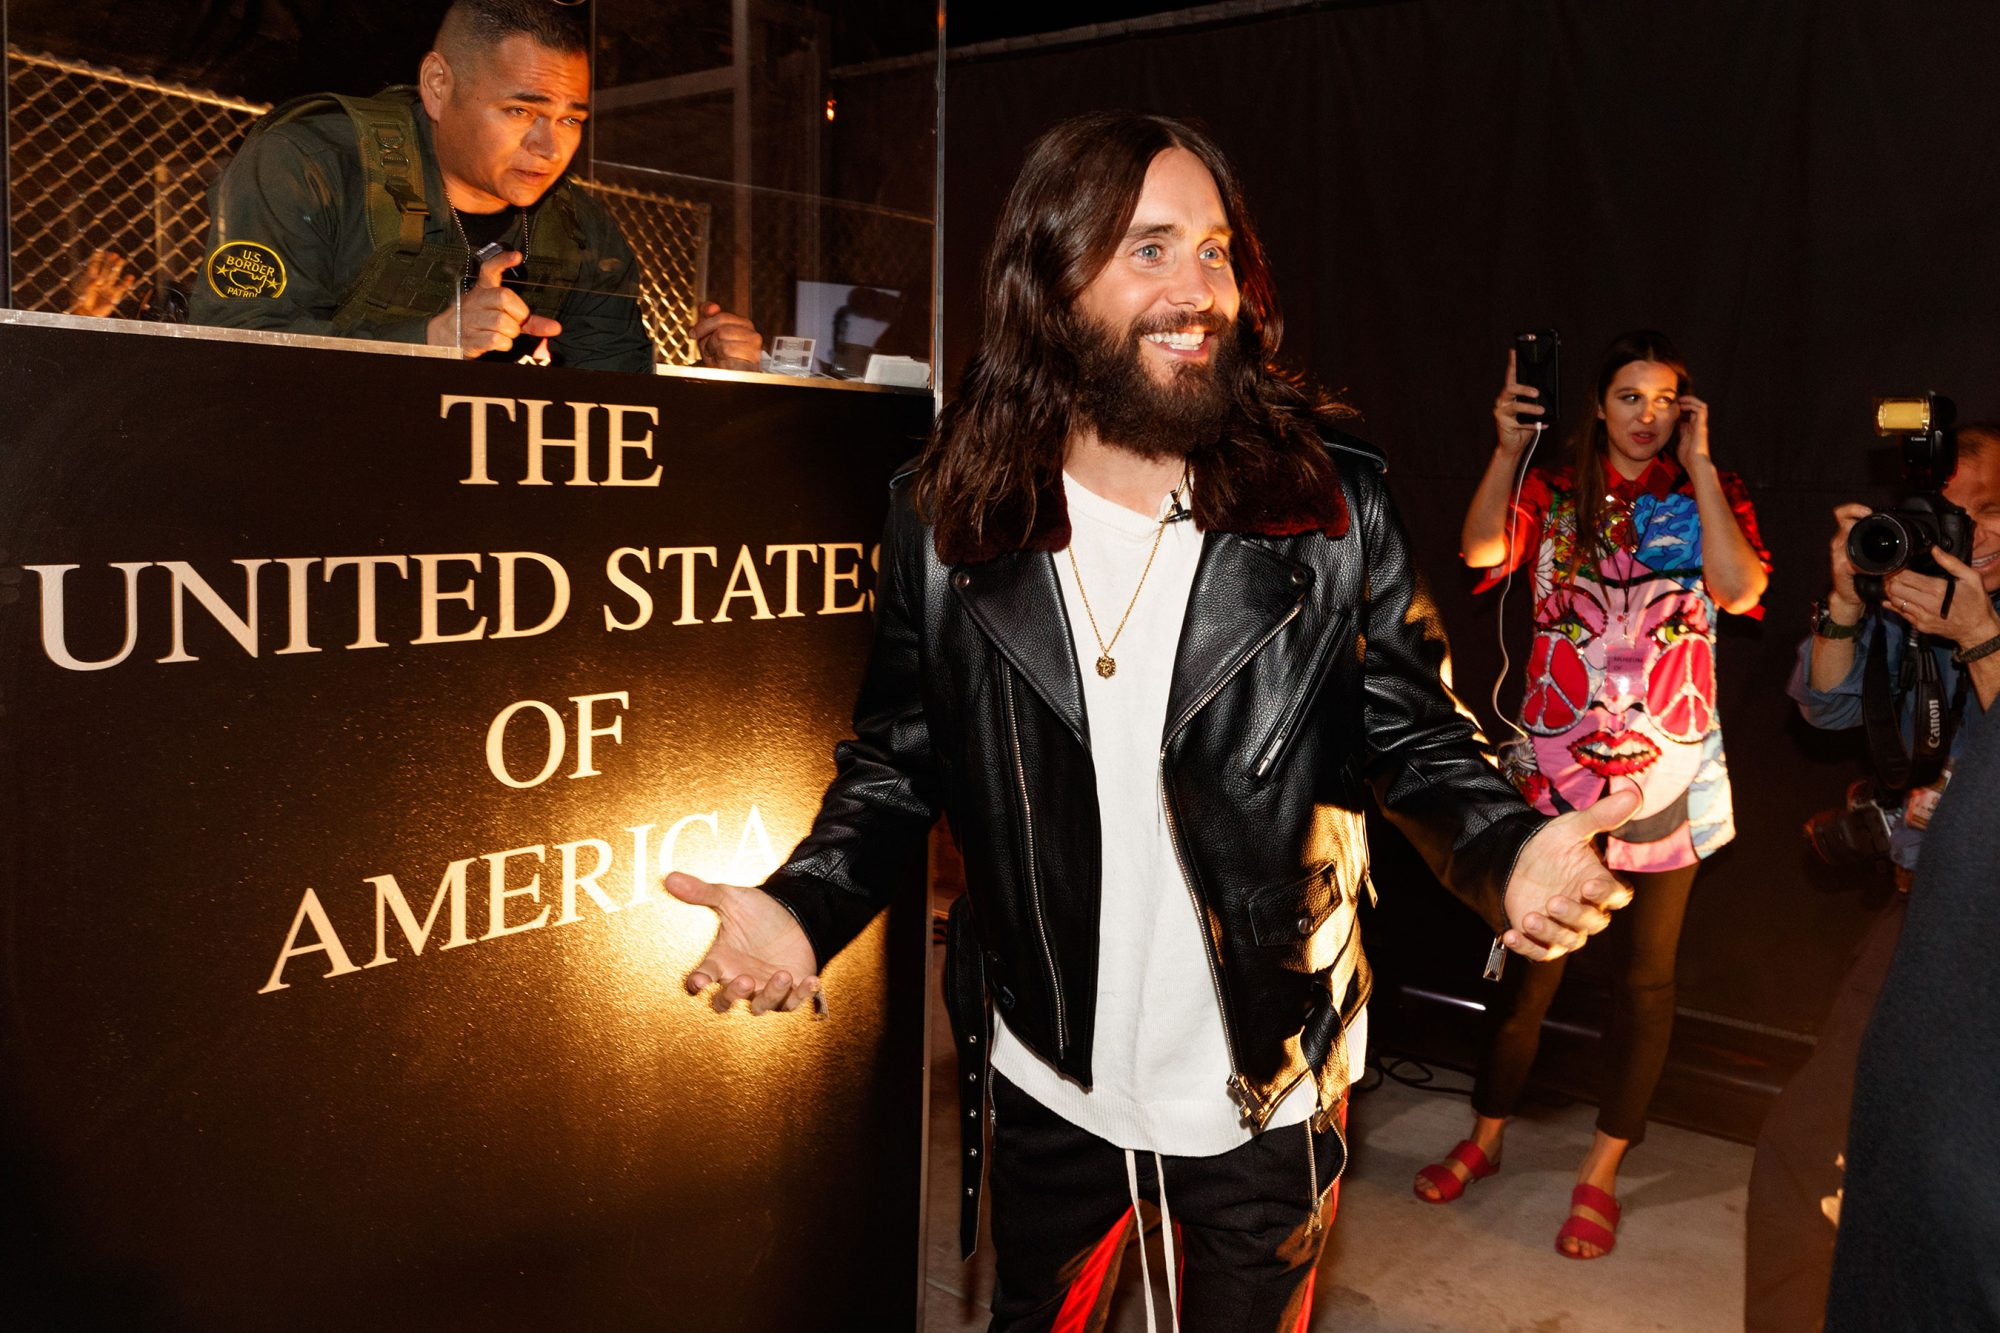 Jared Leto Of Thirty Seconds To Mars Visits Los Angeles On The Mars Across America Tour